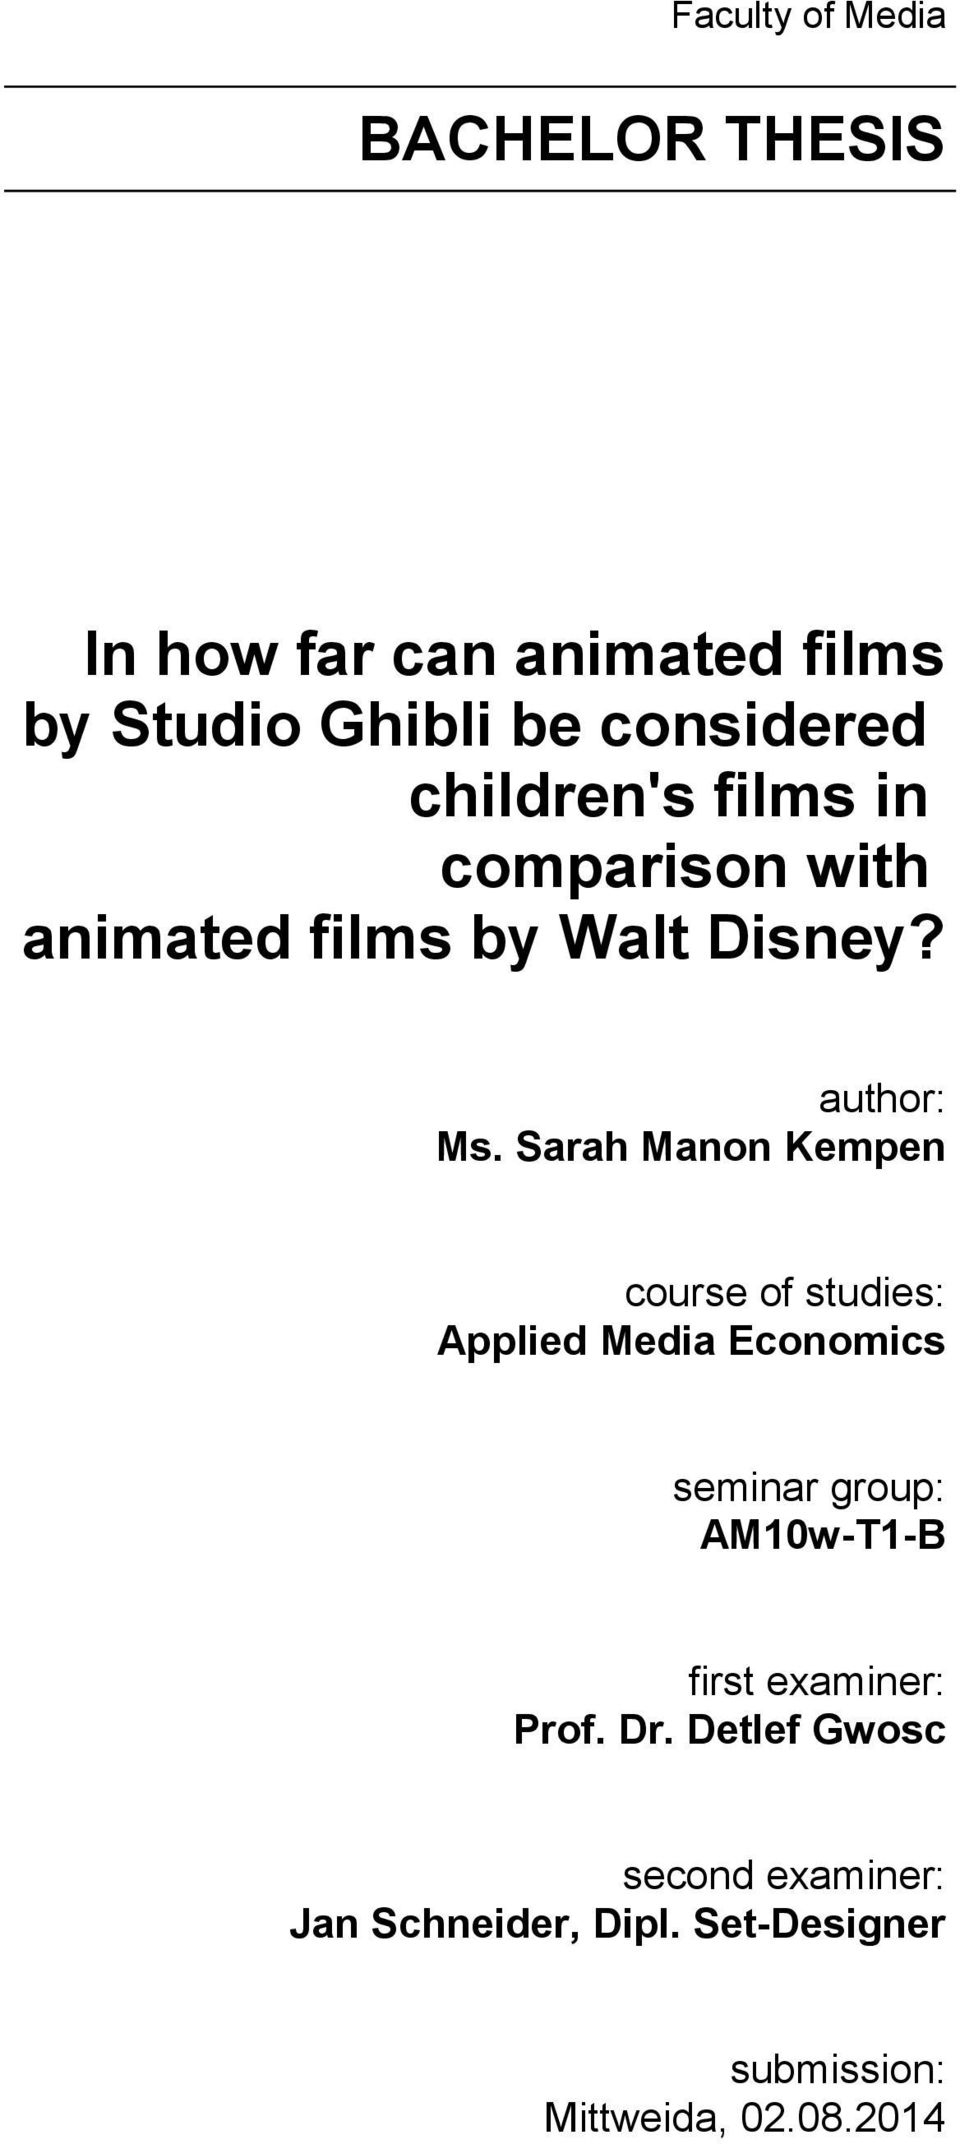 Sarah Manon Kempen course of studies: Applied Media Economics seminar group: AM10w-T1-B first